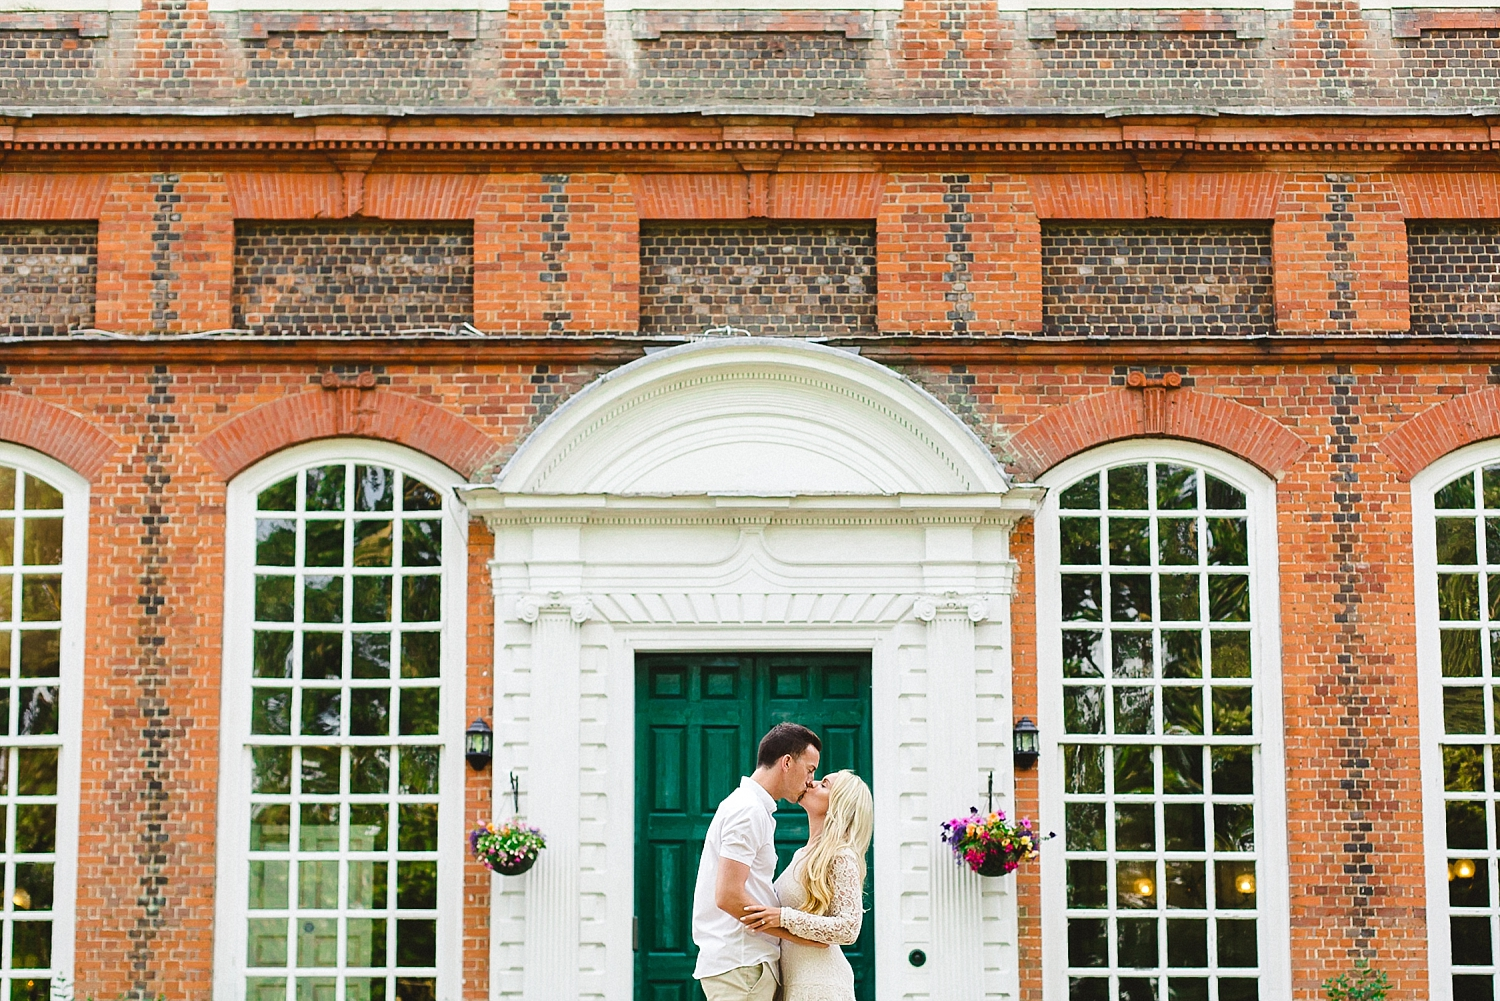 Gosfield_Hall_Wedding_Photographer_0005.jpg